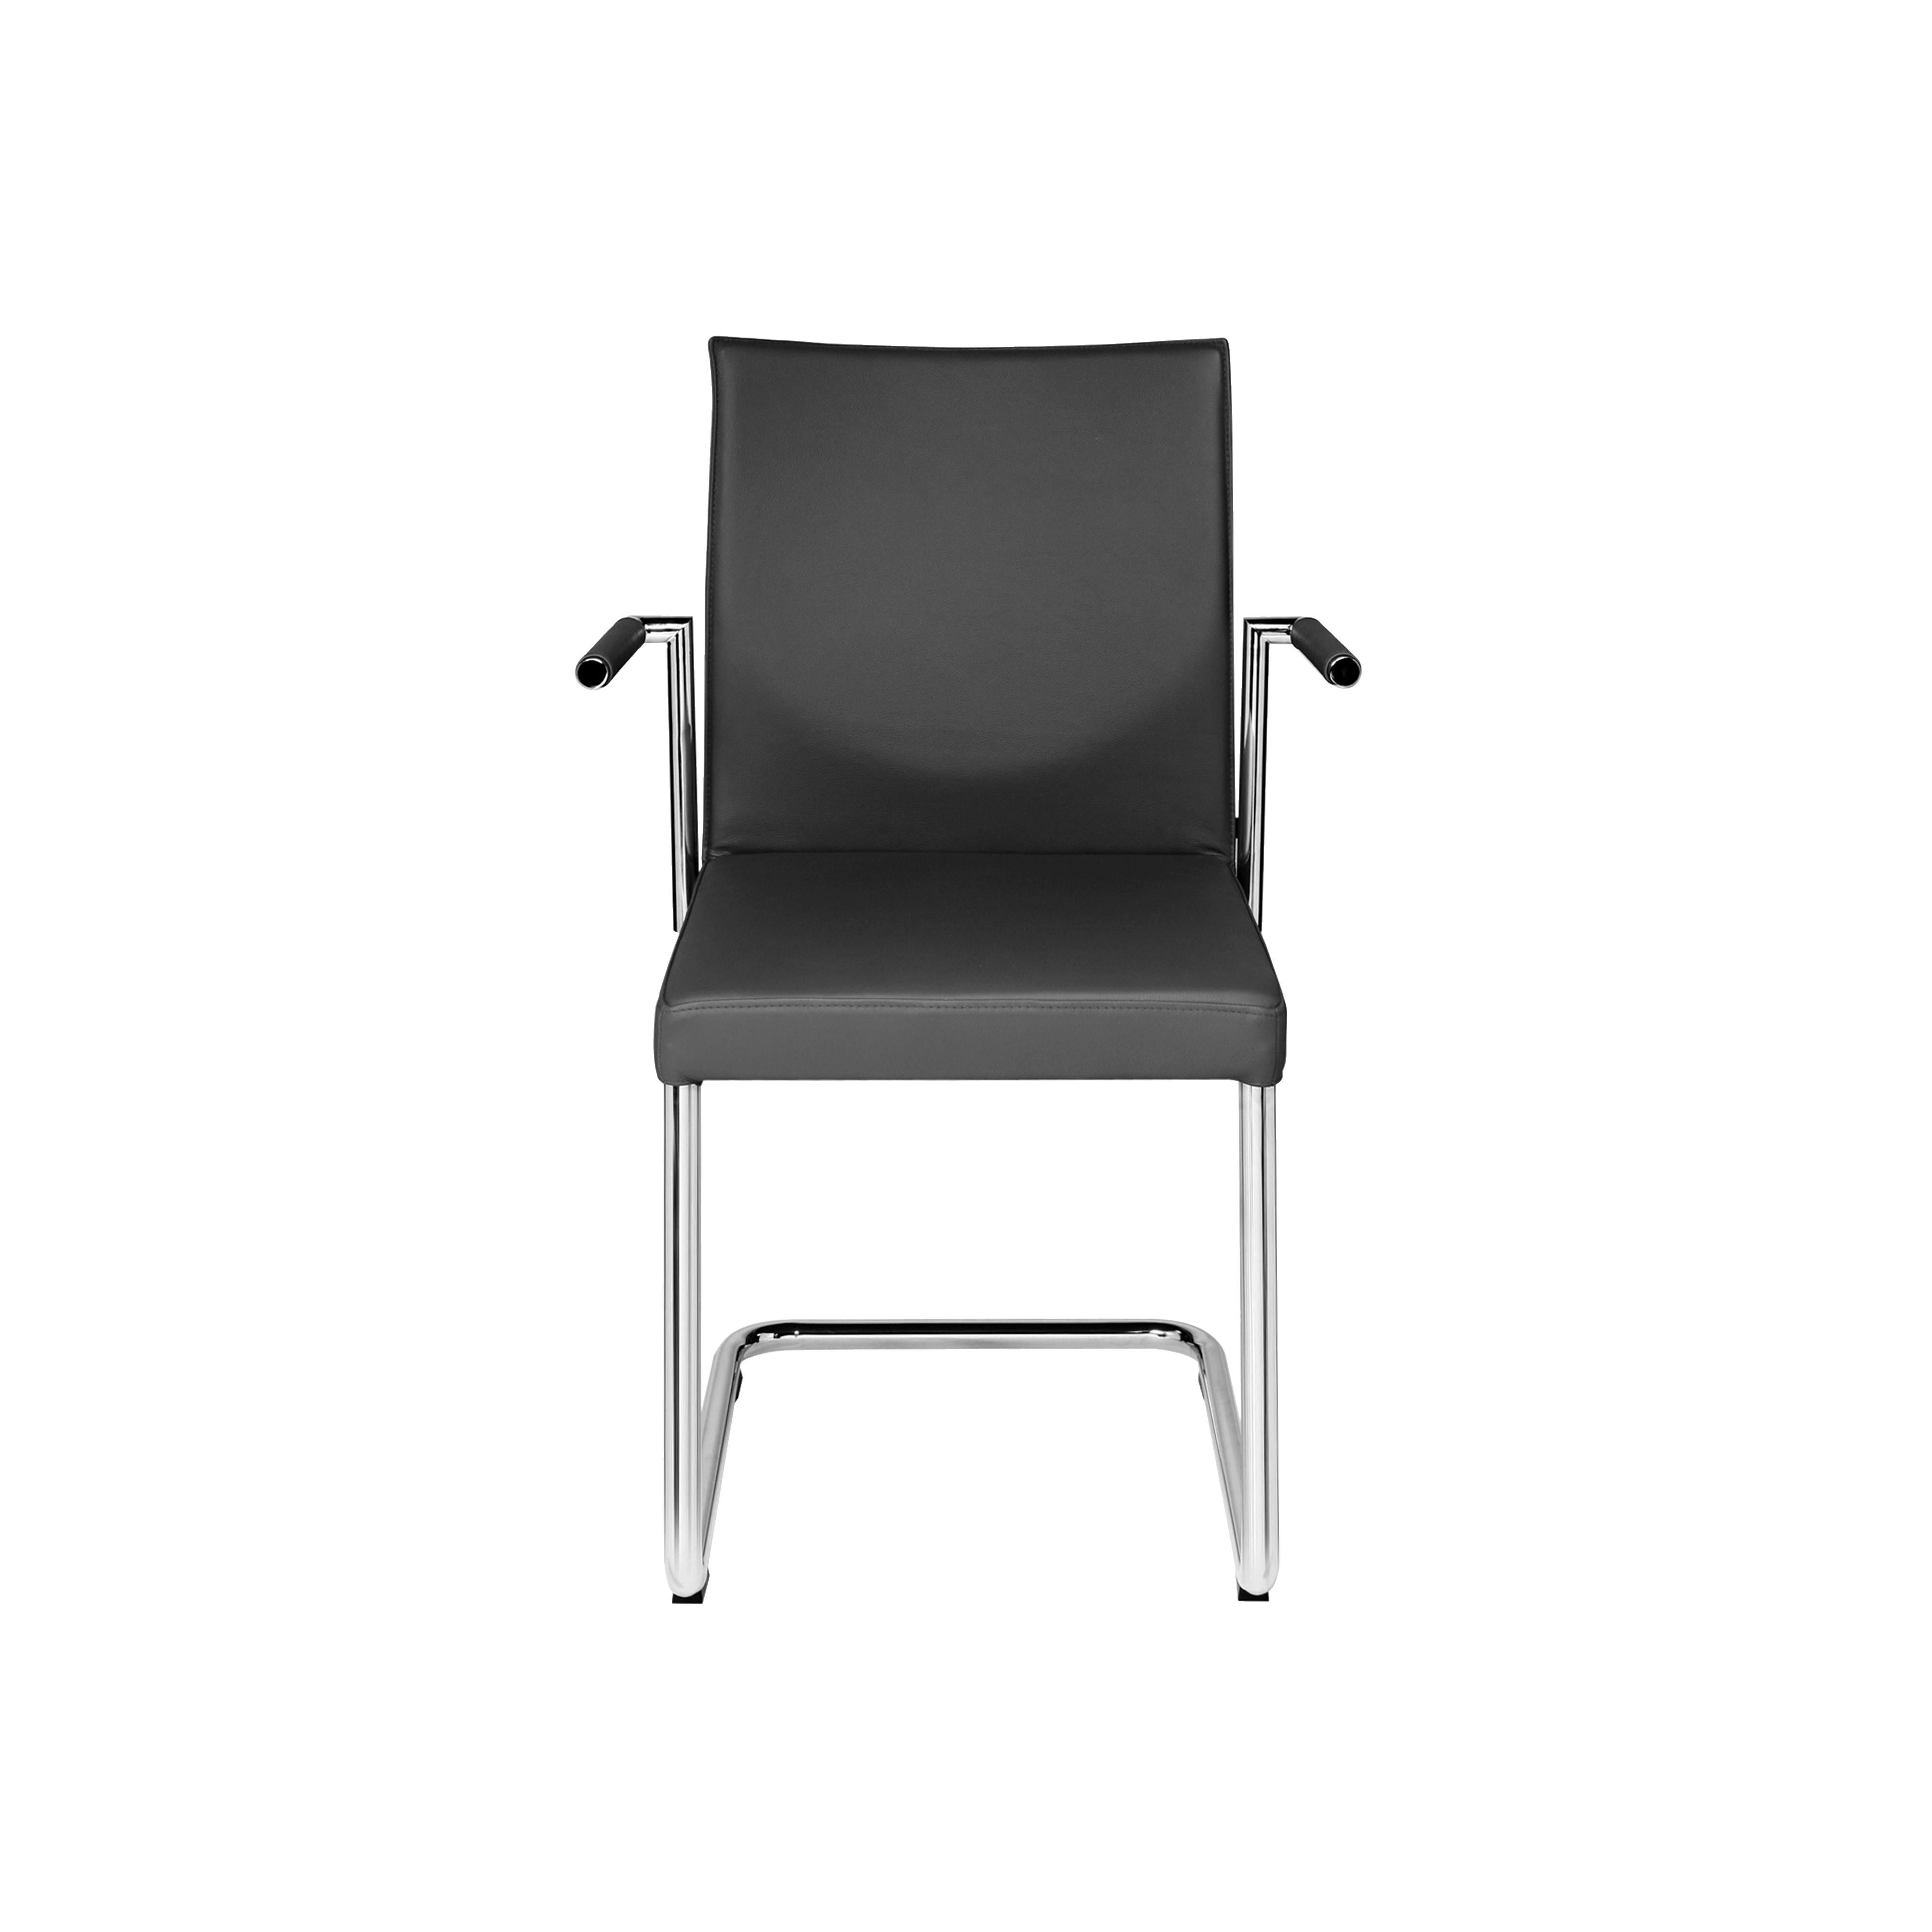 Glooh Cantilever Chair with Armrests in Black Leather by KFF